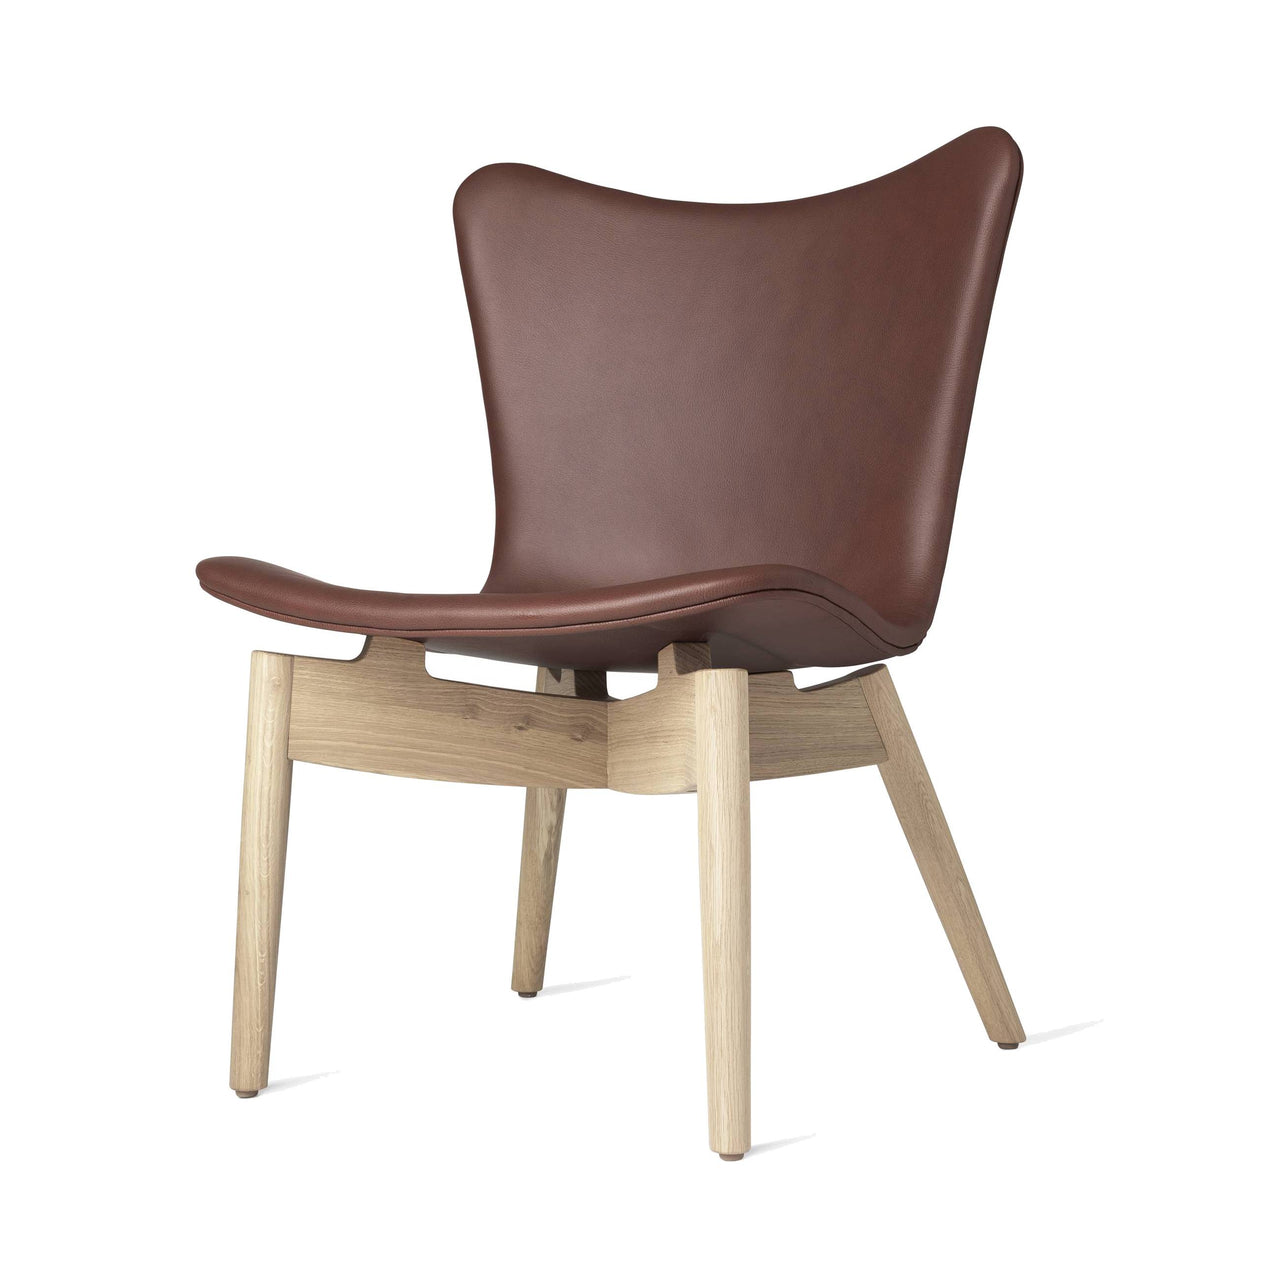 Shell Lounge Chair: Ultra Cognac Leather + Matte Stained Oak